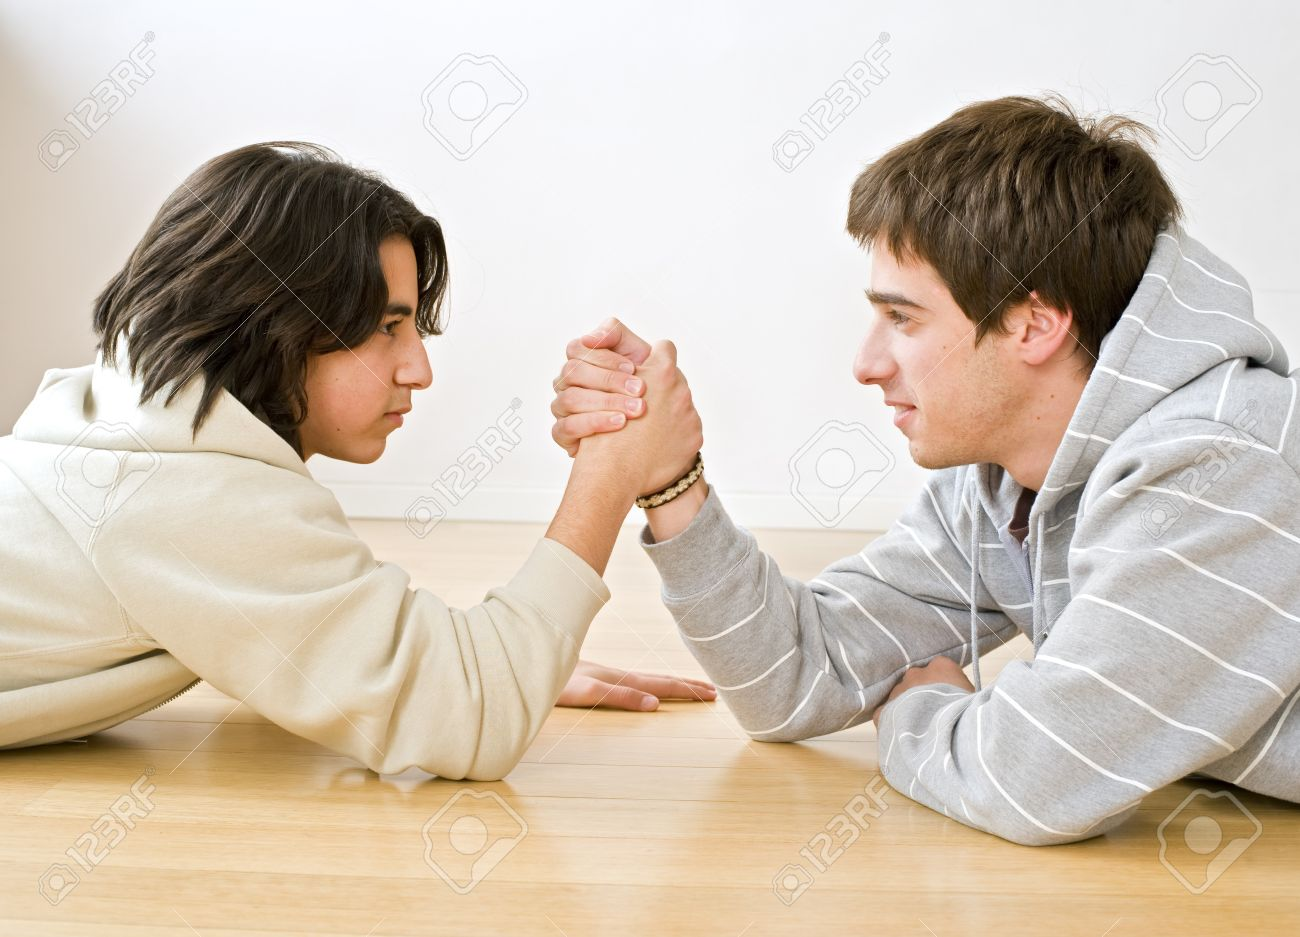 two brothers arm wrestling on the floor Stock Photo - 4003054